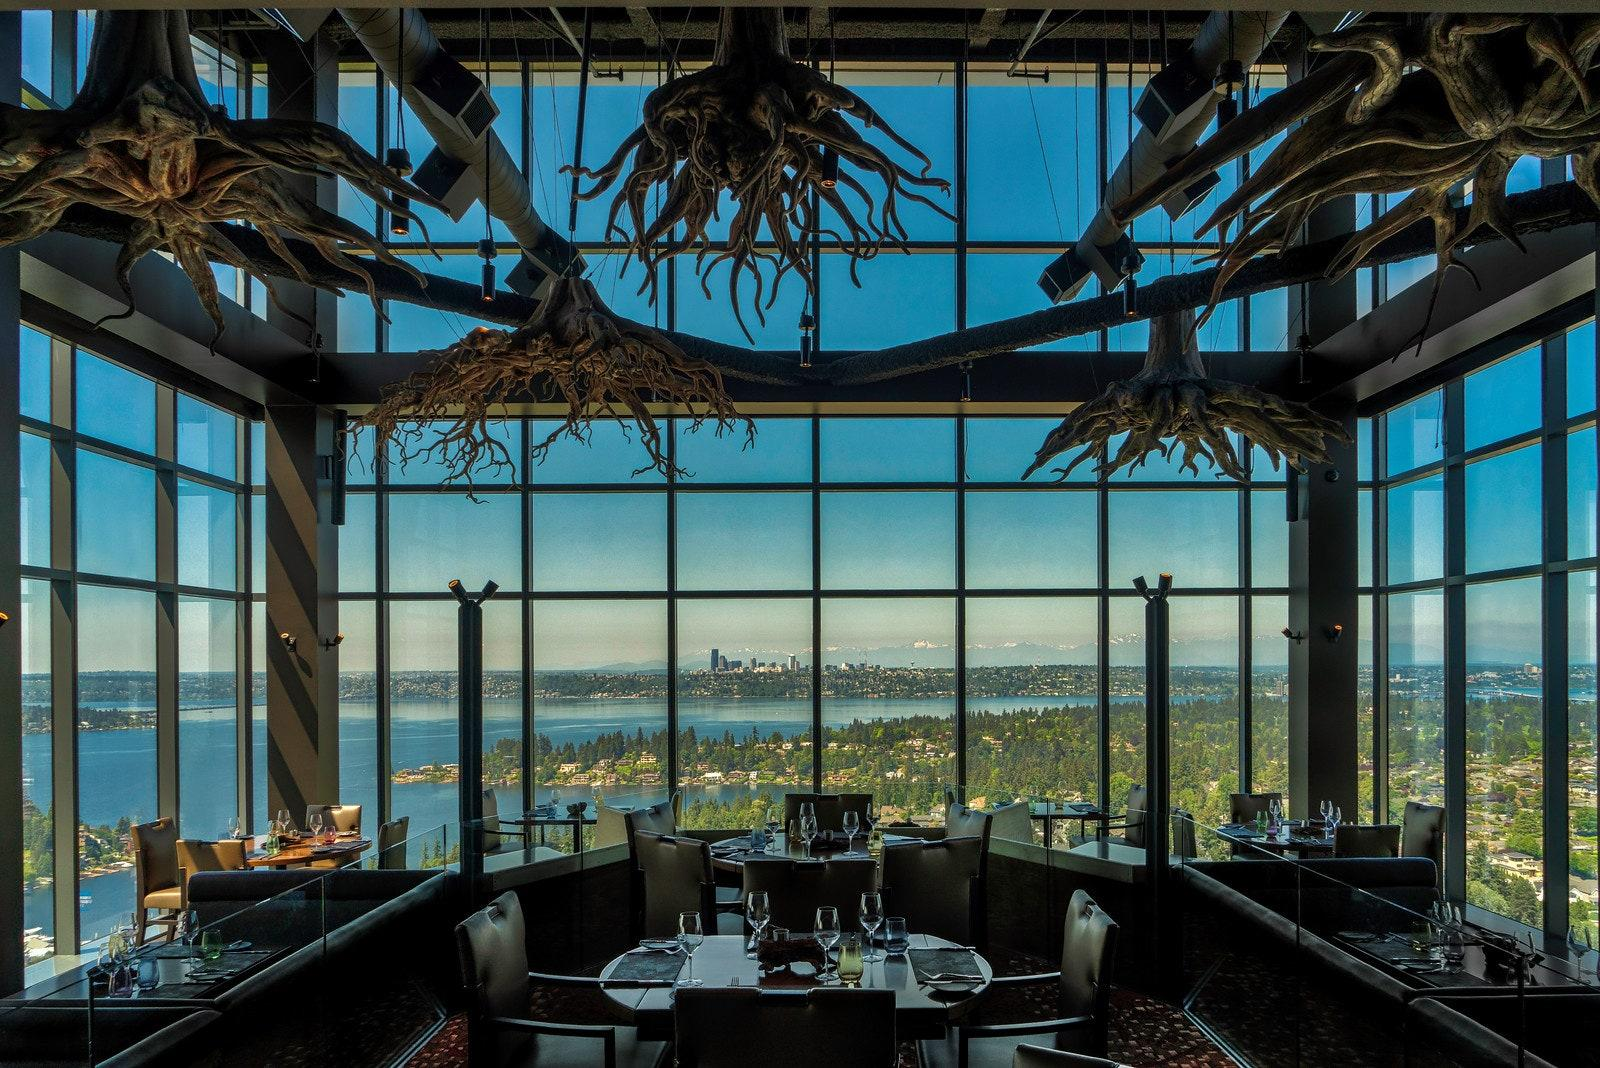 """Opened in June 2018, the aptly named Ascend Prime Steak & Sushi is located at the top of a corporate building, allowing guests to take in the stunning view of Seattle's verdant scenery and stunning architecture. The interior is nothing but elegant as well. Designed by Las Vegas–based DezMotif Studios, the main dining area features enormous cast replicas of tree roots suspended in the air. The trees in the dining room are the exact same wood that the chefs use in the kitchen to grill meat and poultry. <em>10400 NE 4th St, Suite 3100, Bellevue, Washington</em> <a href=""""https://ascendprime.com/"""" rel=""""nofollow noopener"""" target=""""_blank"""" data-ylk=""""slk:ascendprime.com"""" class=""""link rapid-noclick-resp""""><em>ascendprime.com</em></a>"""